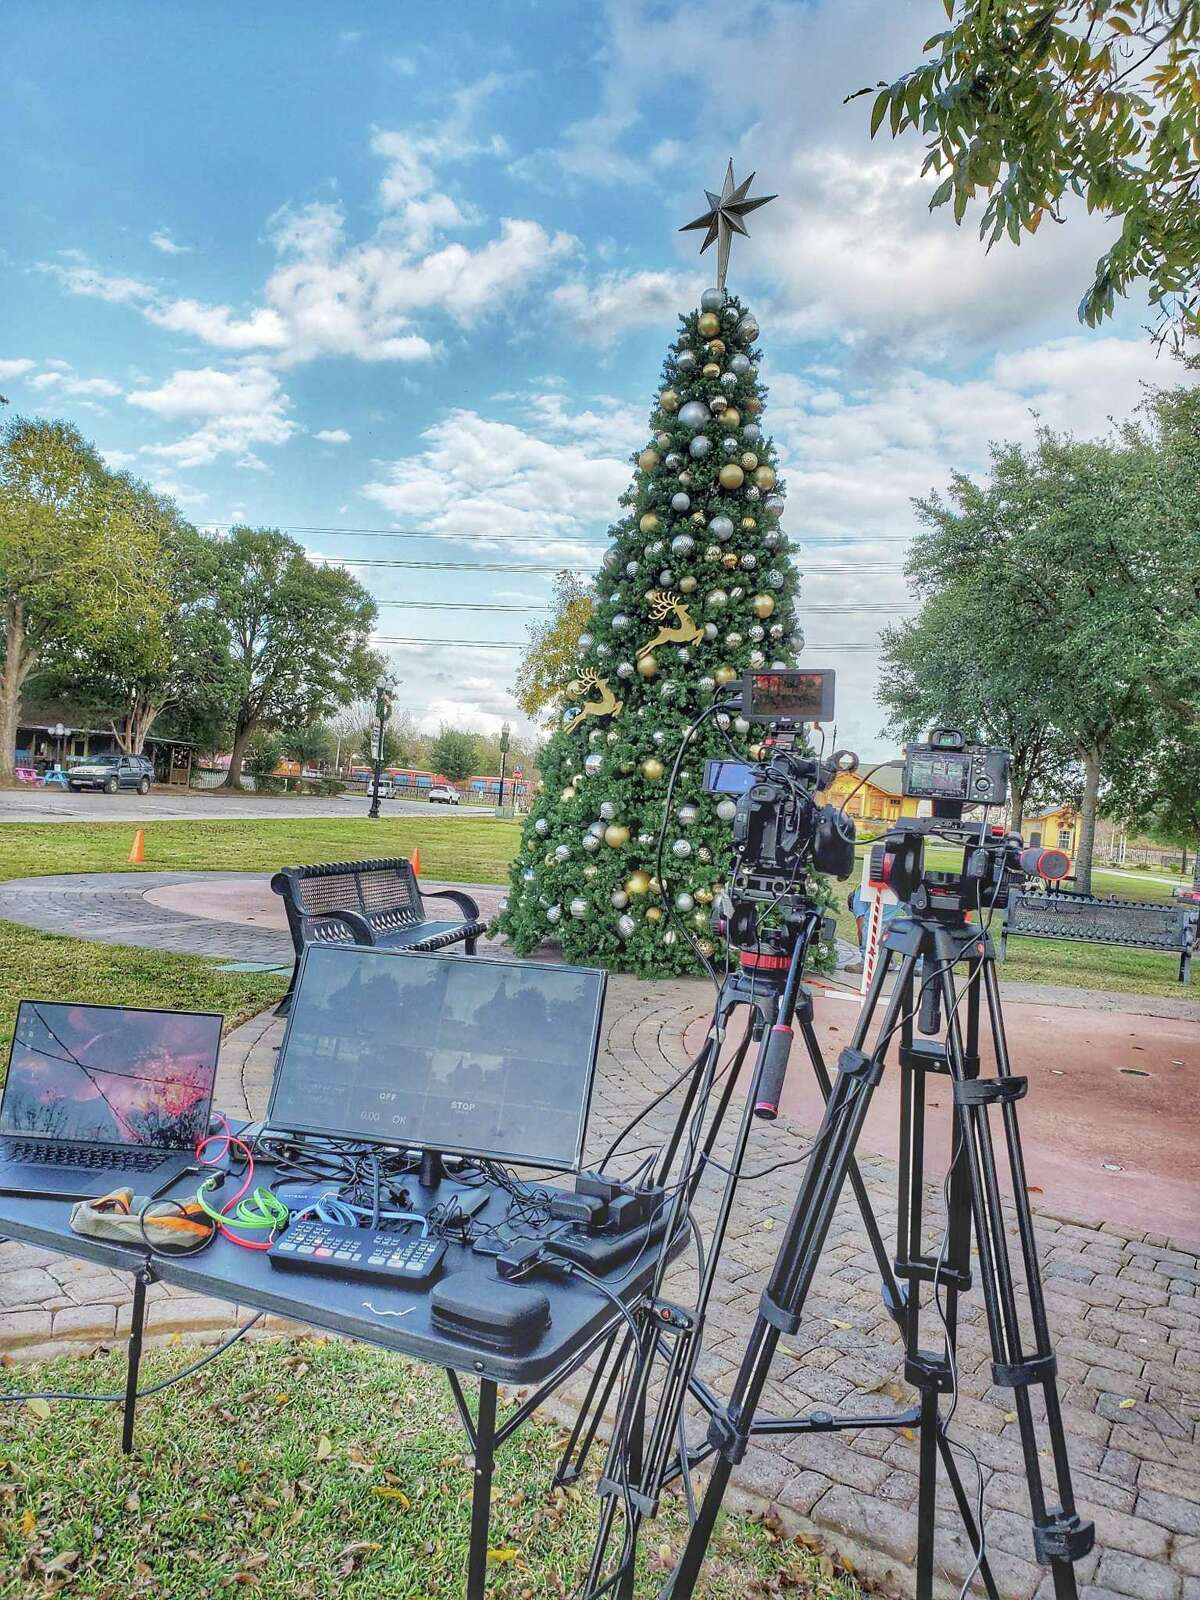 Cameras are set up in preparation for the virtual Christmas tree lighting ceremony in Tomball, which was live streamed on Facebook Nov. 20, 2020.